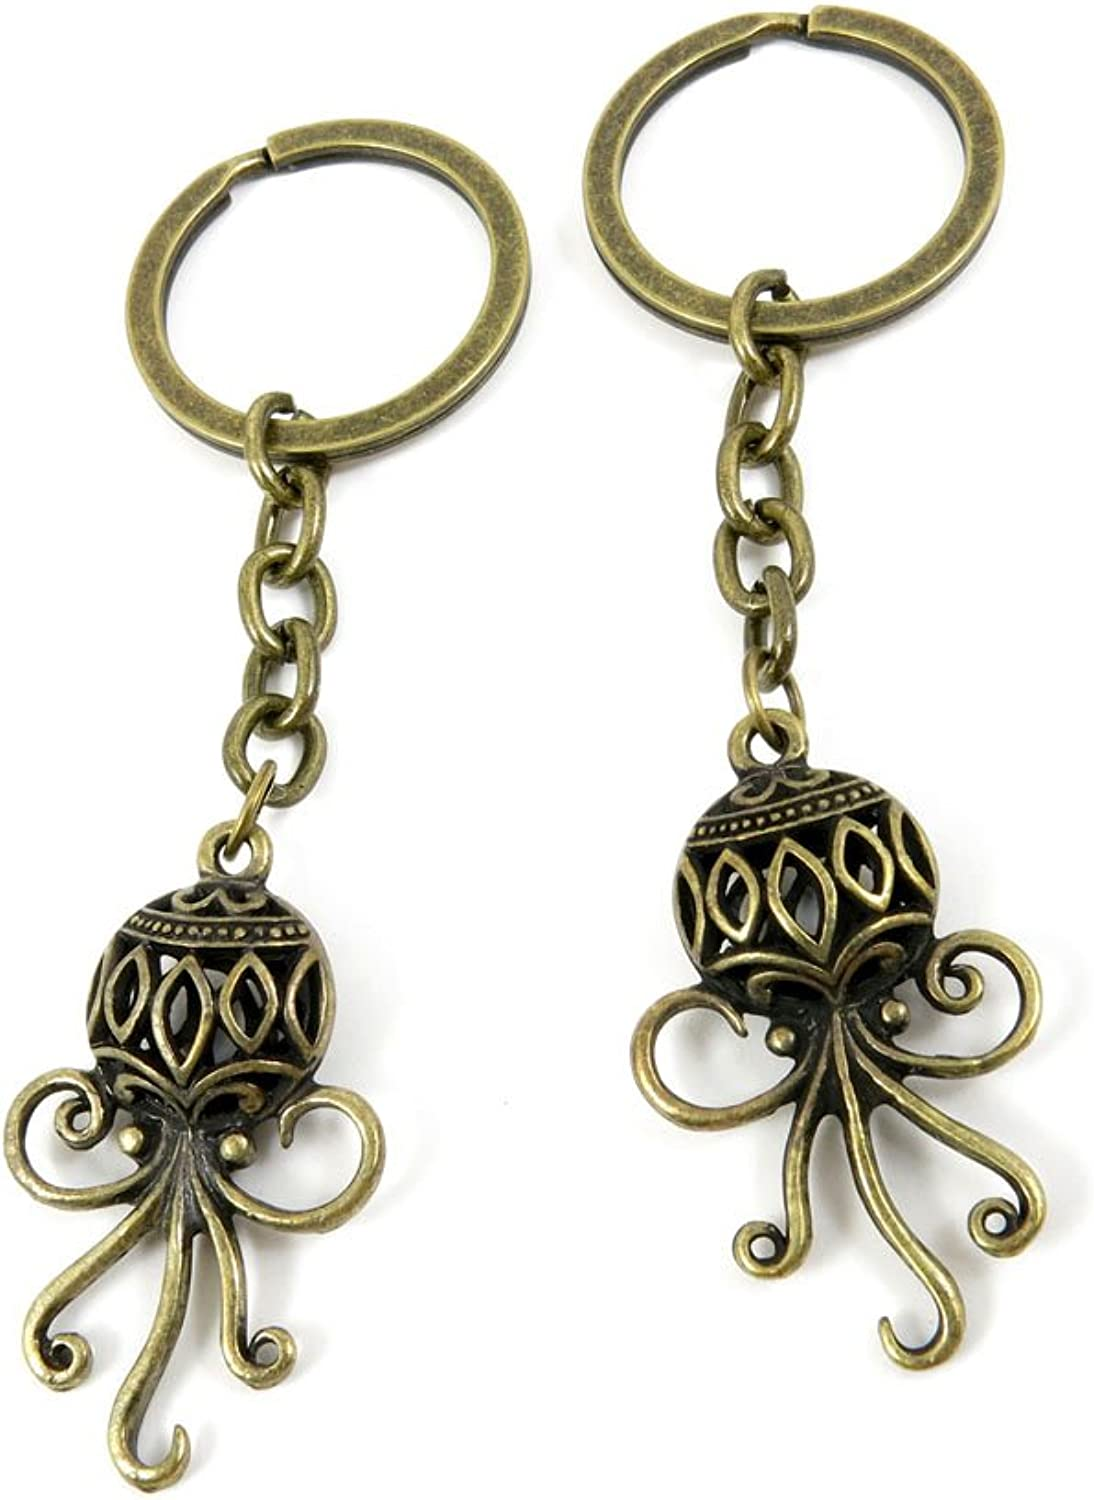 30 PCS Keyrings Keychains Key Ring Chains Tags Jewelry Findings Clasps Buckles Supplies O0DS6 Hollow Octopus